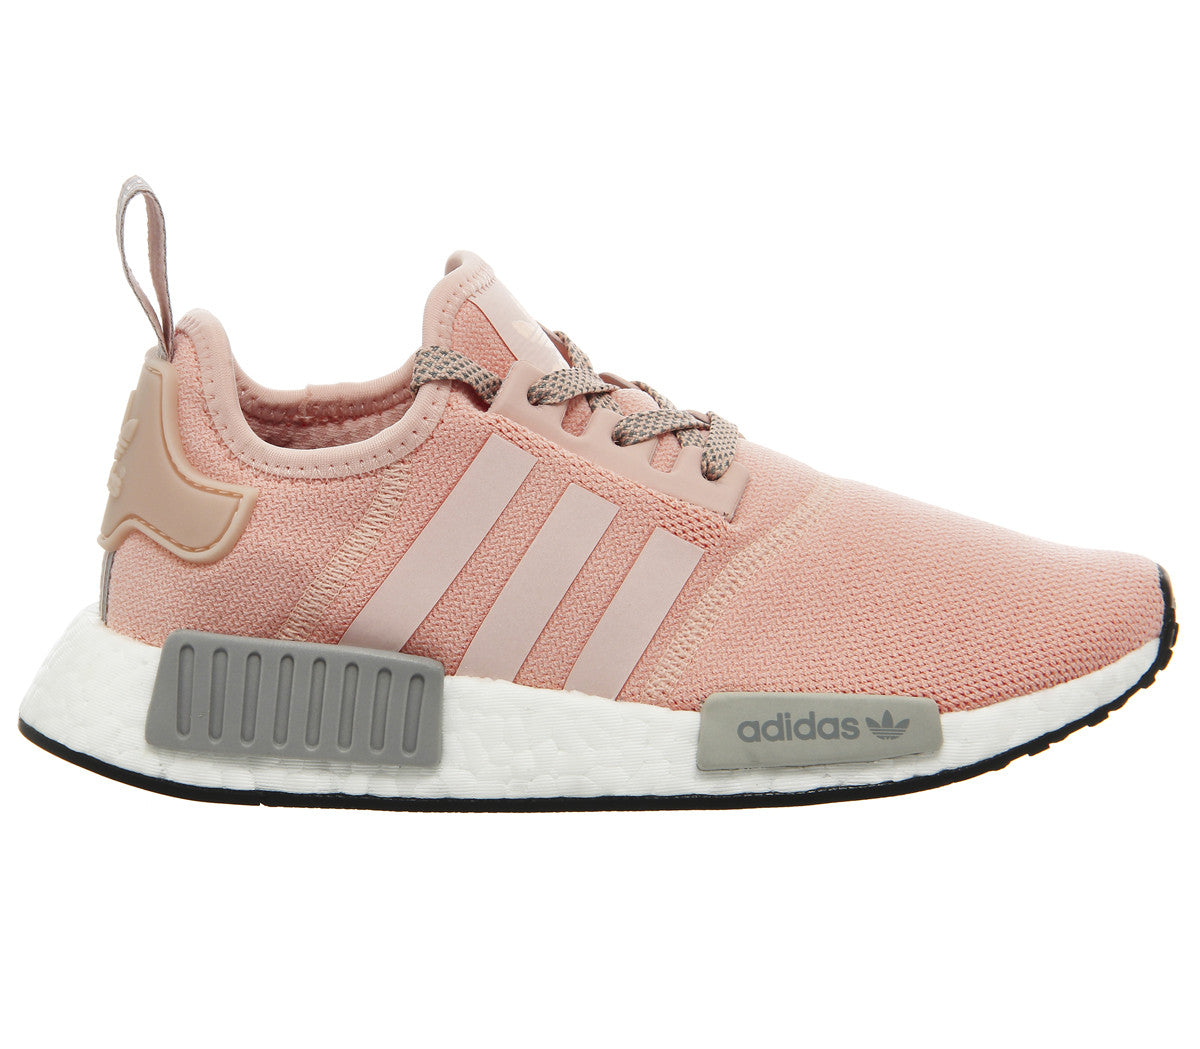 How To Lace Your Sneakers / Swap Your Shoe Laces : ADIDAS NMD R1 Vapour Pink